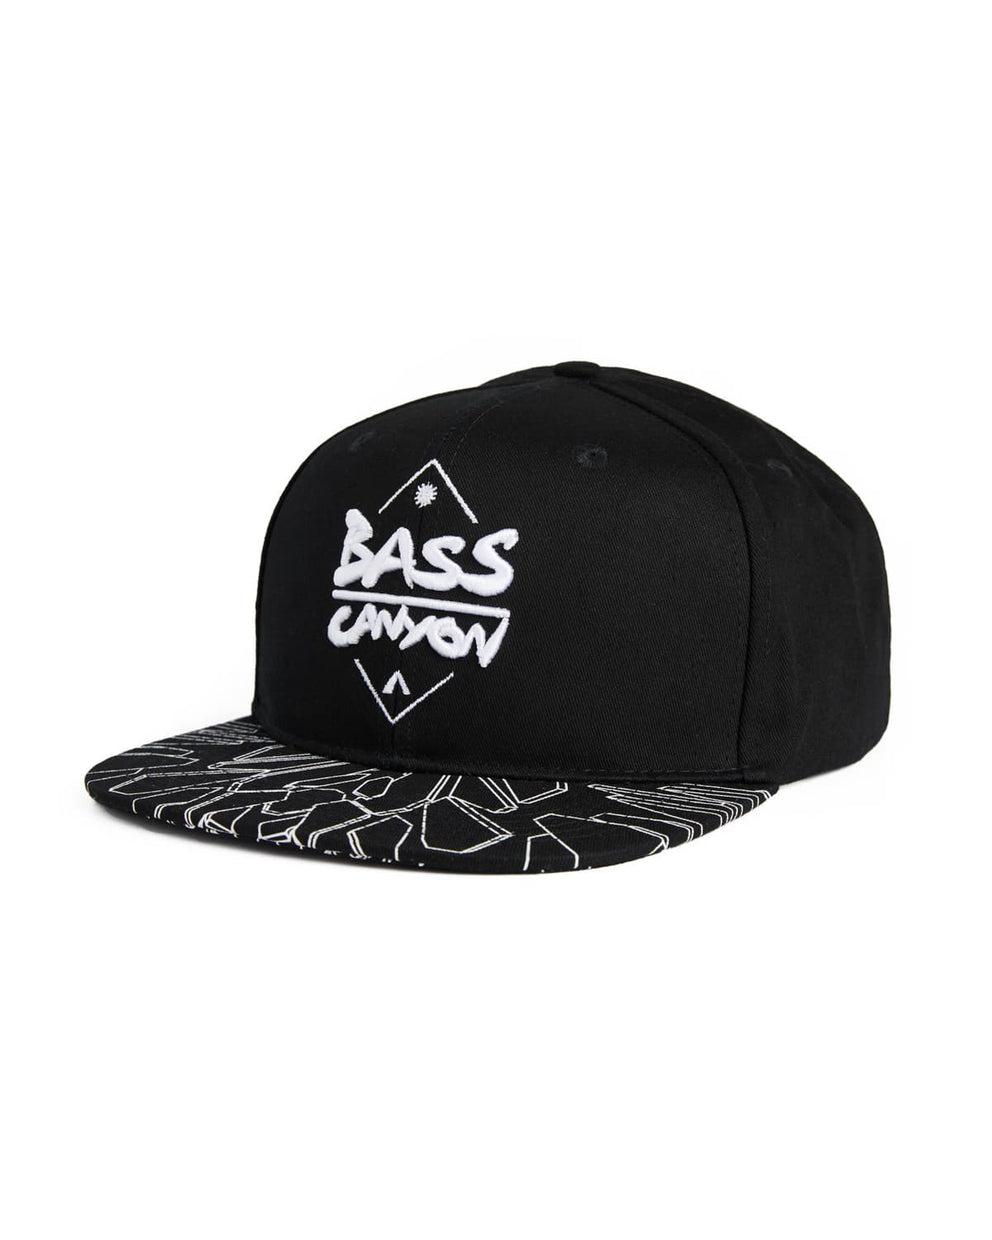 Bass Canyon Snapback - Black/White